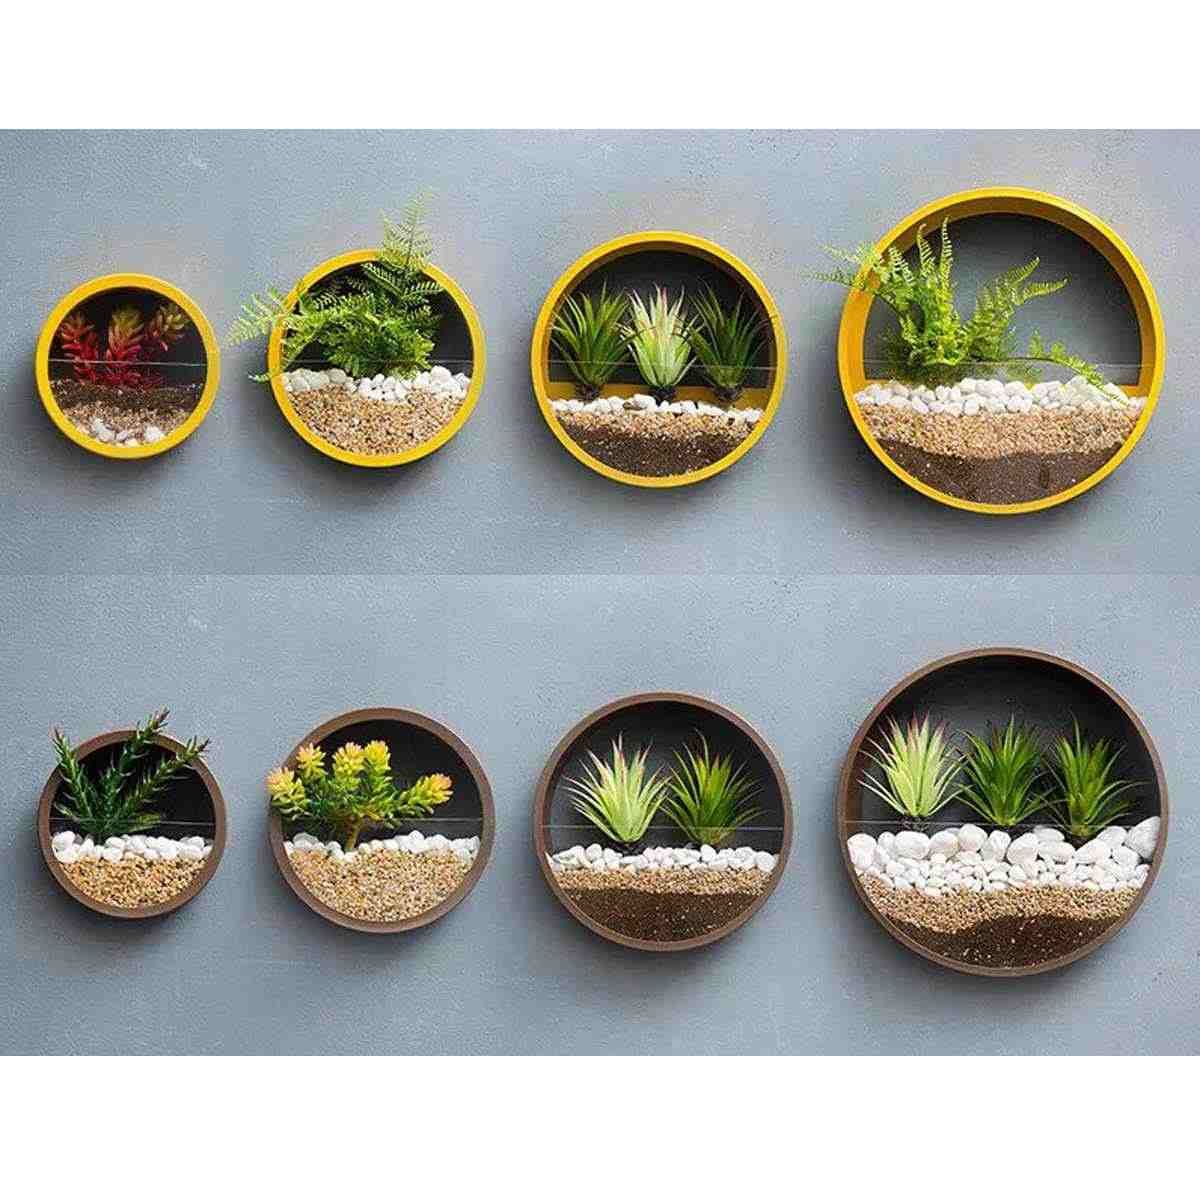 Wall Vase Metal Iron Art Solid Color Round Vase Artificial Flower Basket Wall Planter Hanging Vases For Home Decoration Crafts Aliexpress In 2020 Hanging Flower Pots Wall Mounted Vase Wall Vase